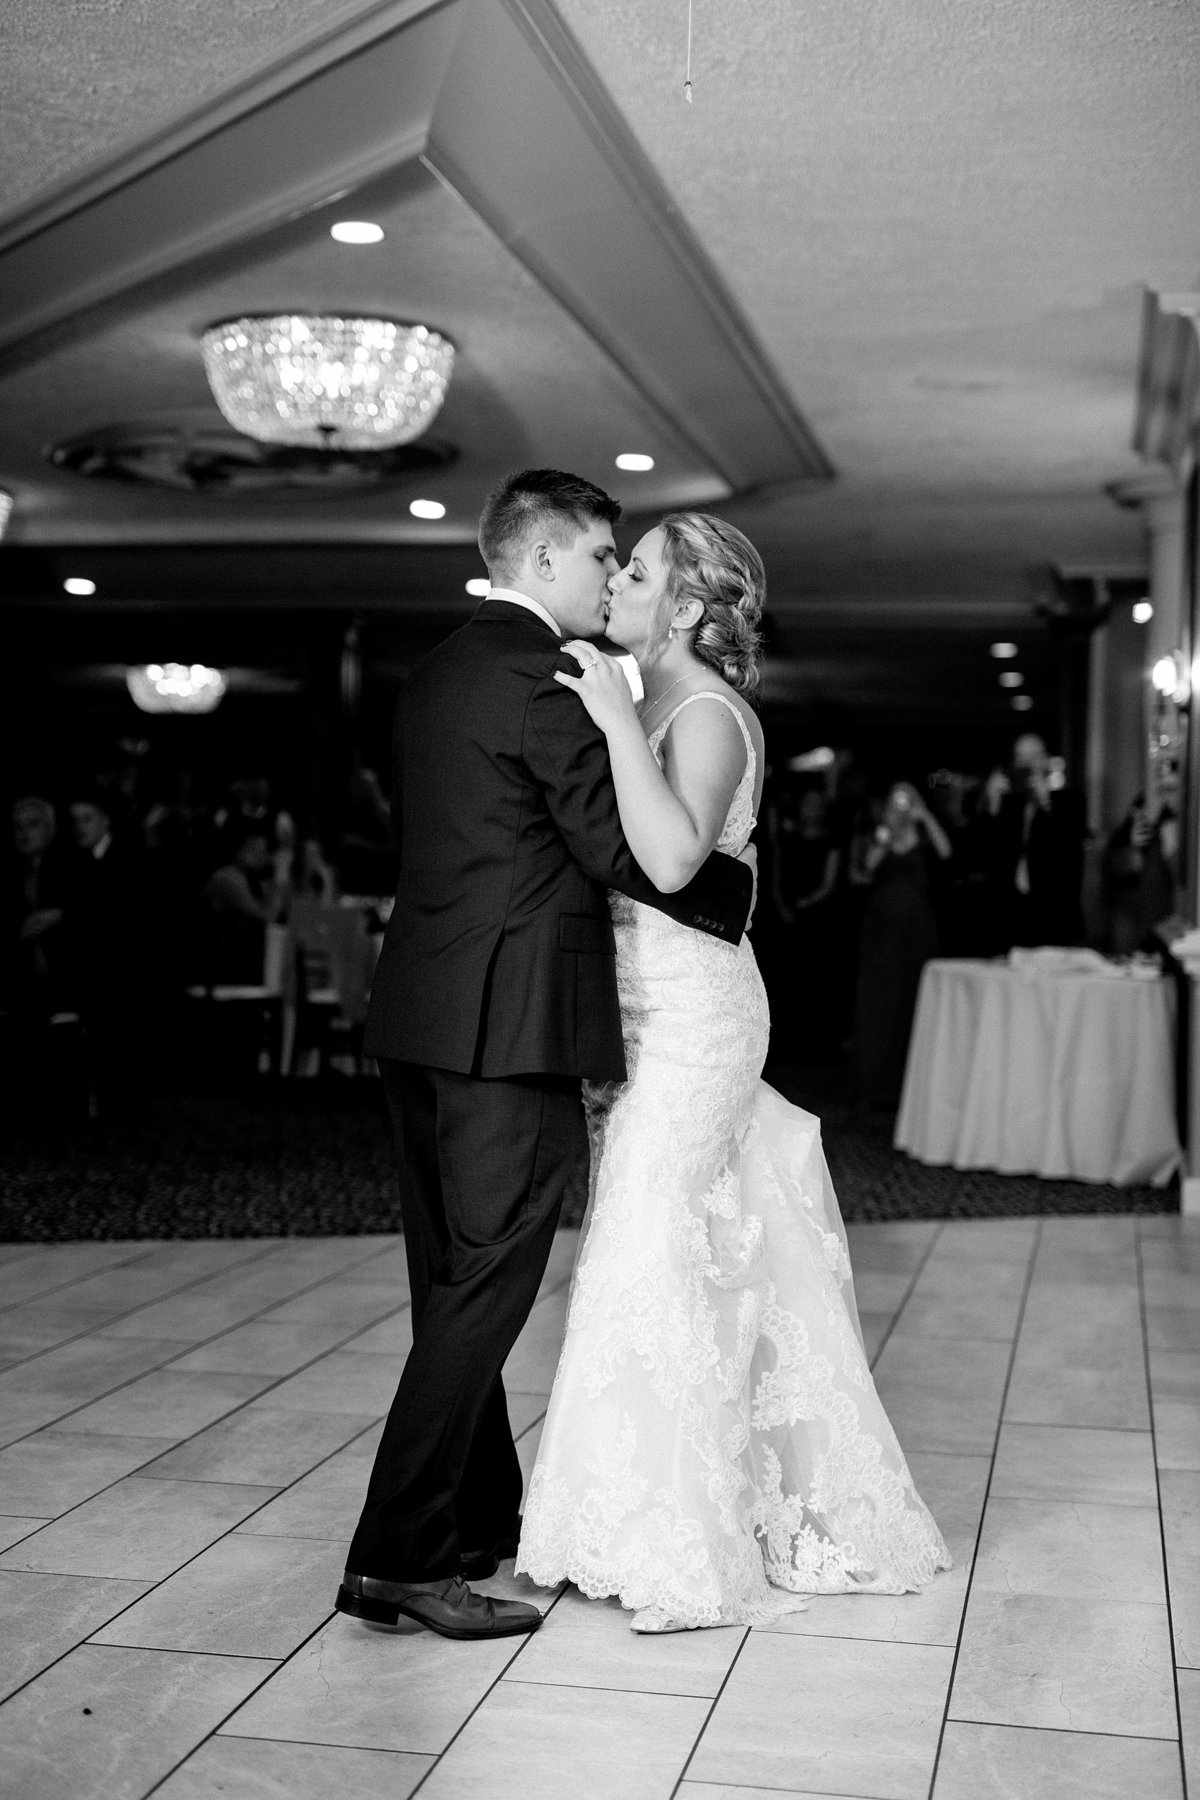 Jordan-Ben-Pine-Knob-Mansion-Clarkston-Michigan-Wedding-Breanne-Rochelle-Photography114